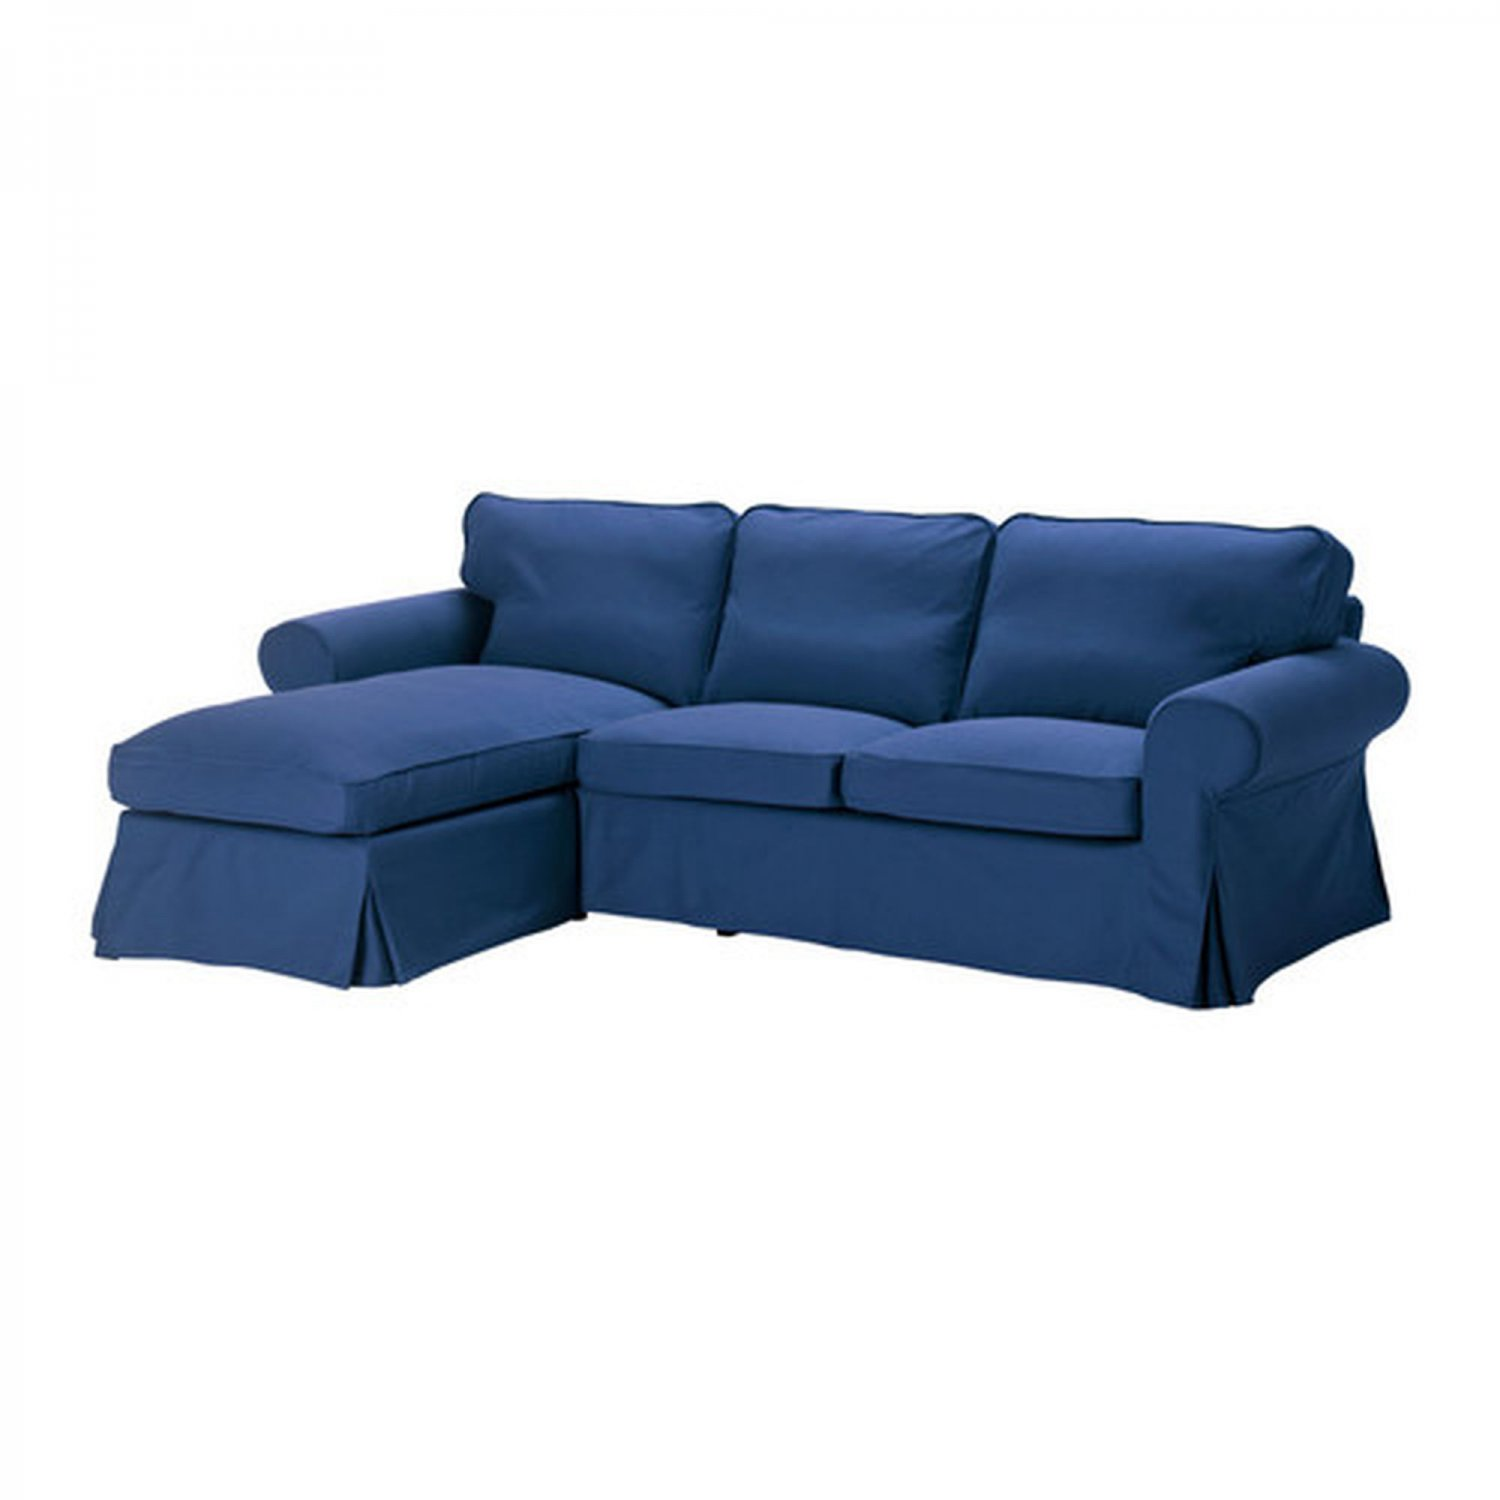 Ikea Ektorp Loveseat With Chaise Lounge Cover Slipcover Idemo Blue